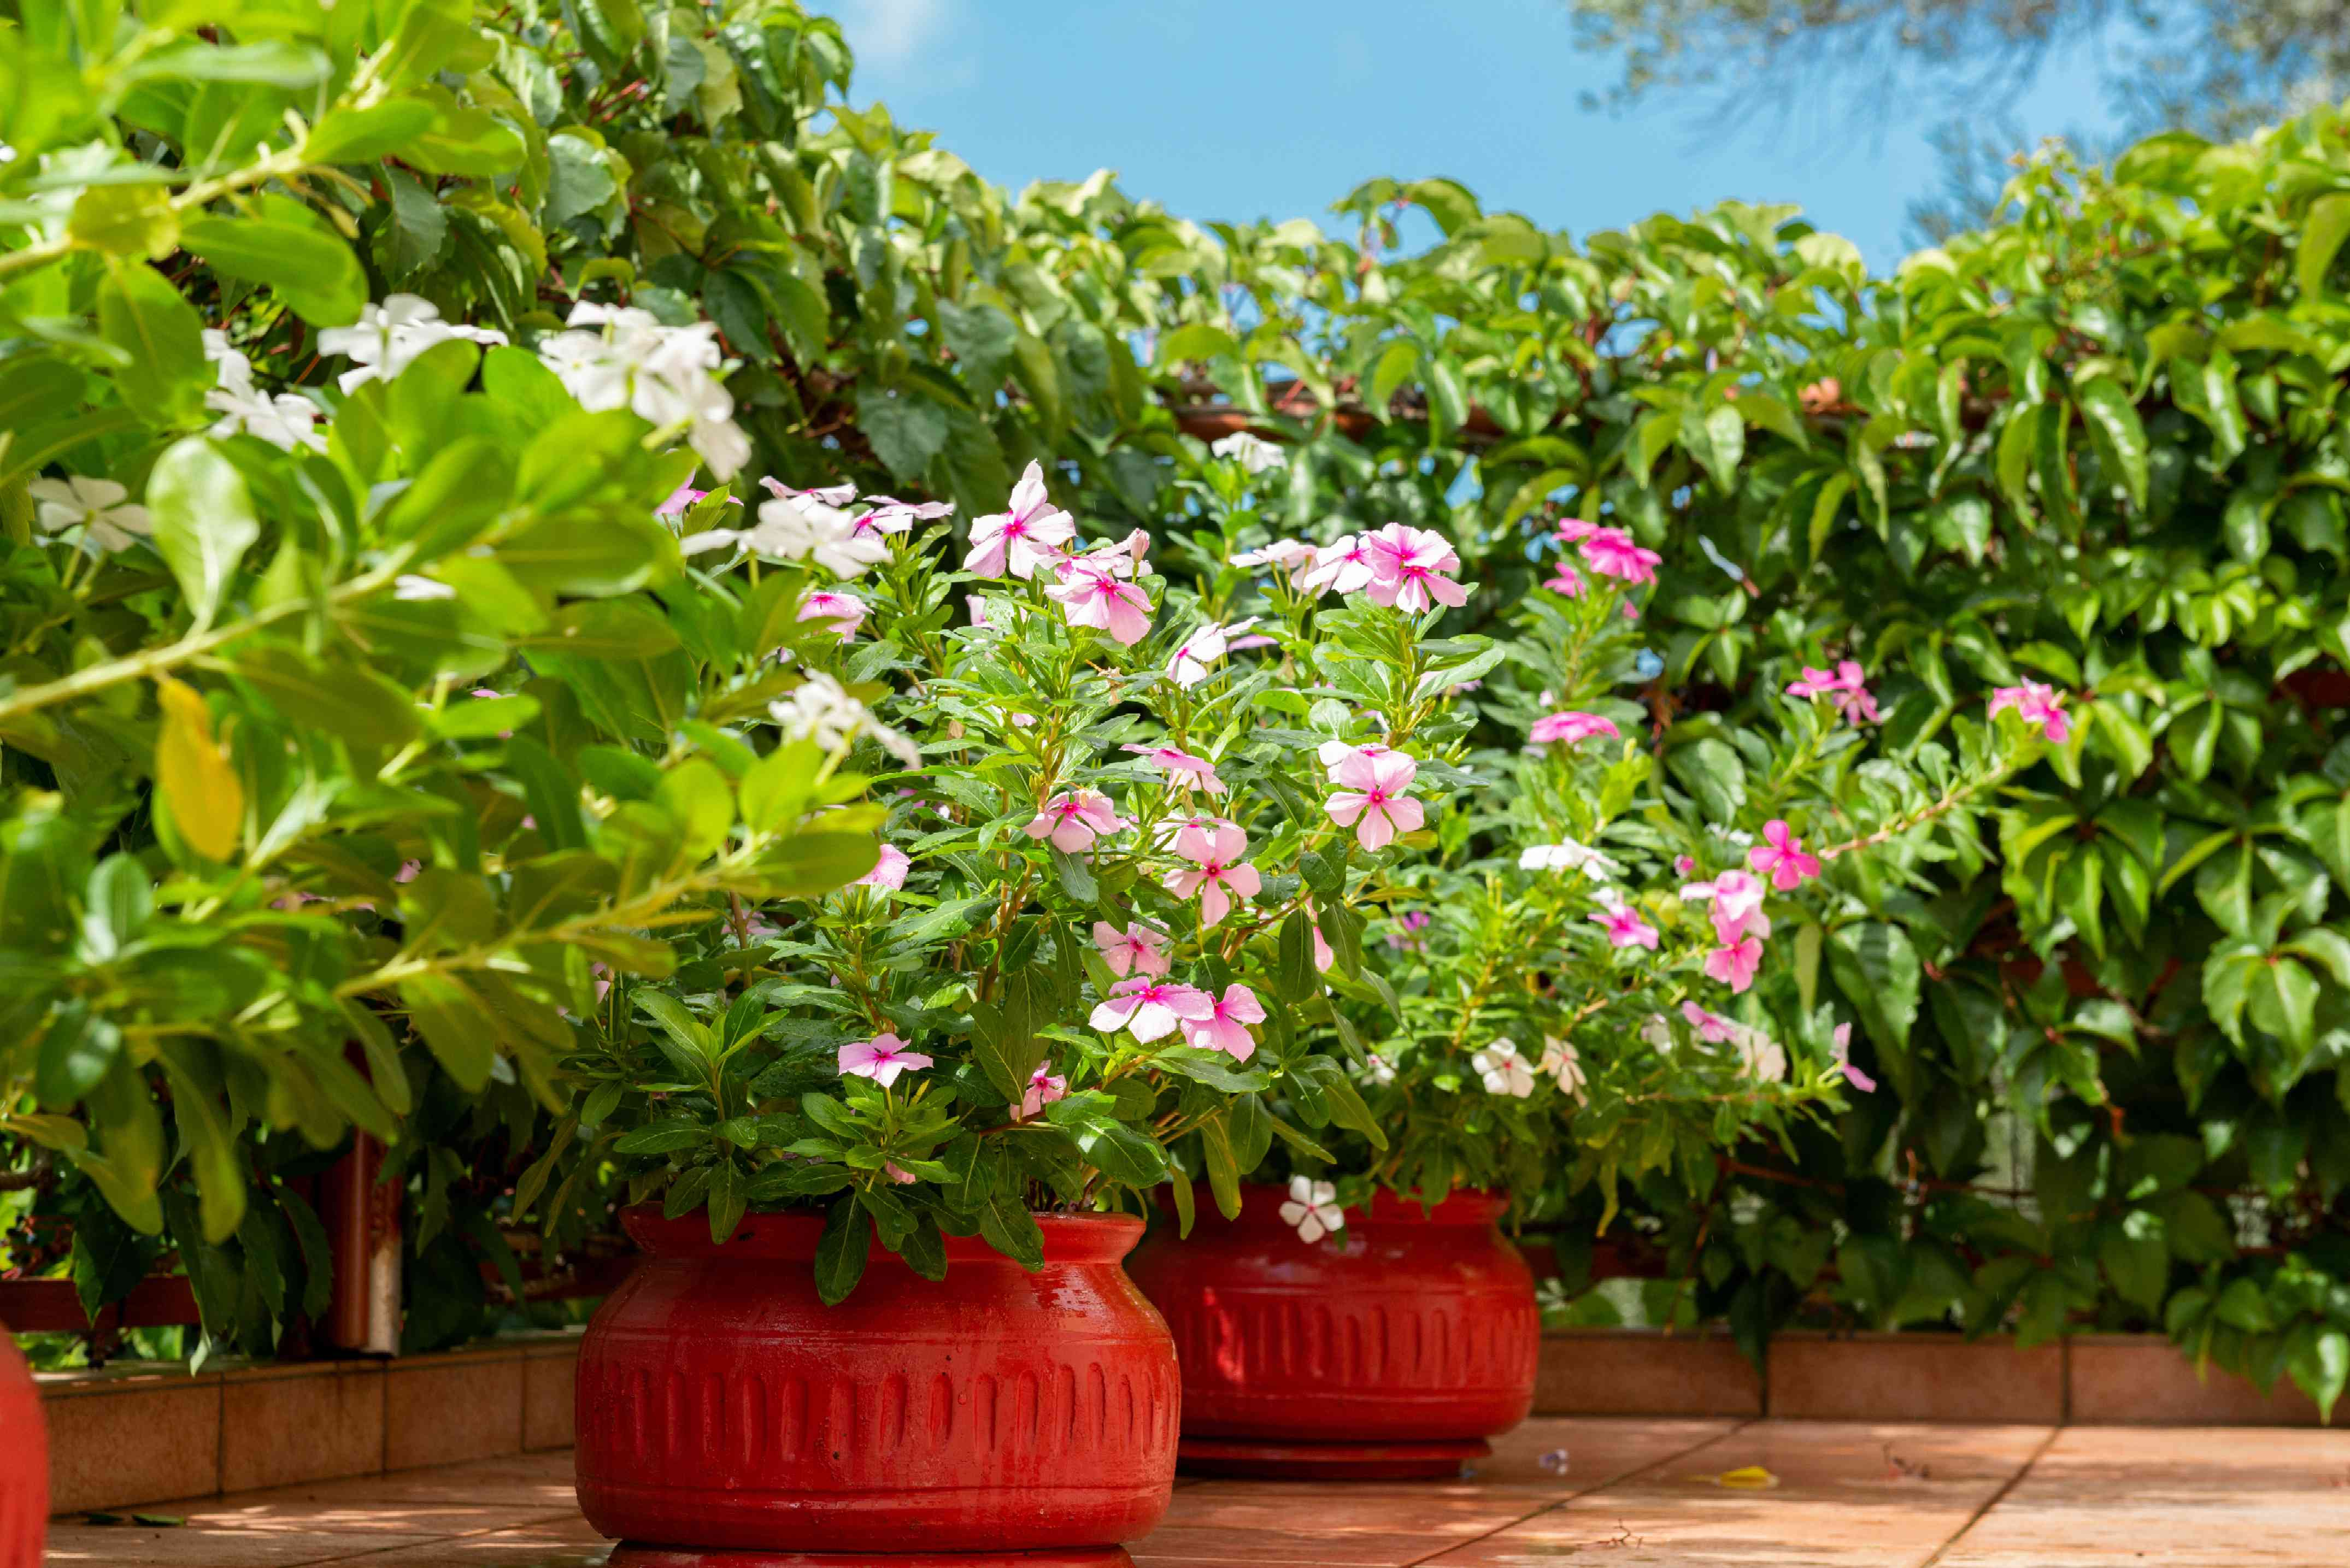 Garden balcony with orange pots with pink flowers surrounded by bushes